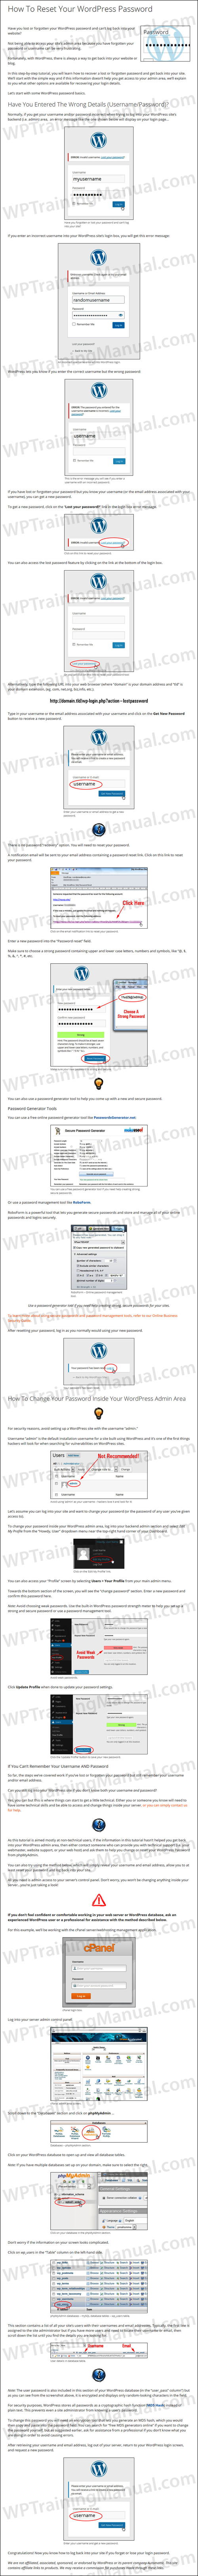 Tutorial: How To Reset Your WordPress Password - WPTrainingManual.com